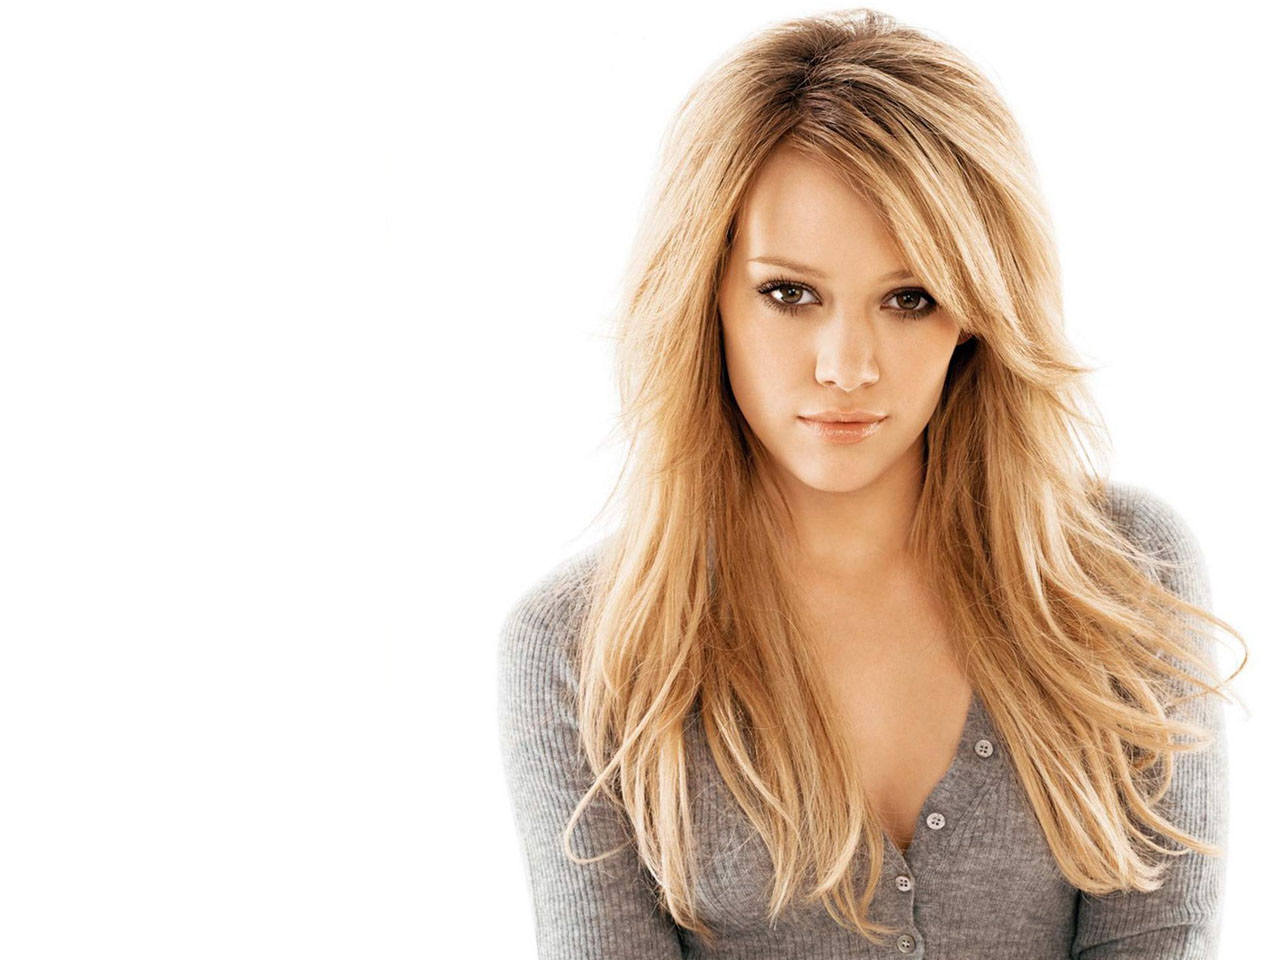 hilary duff reach outhilary duff stranger, hilary duff песни, hilary duff with love, hilary duff reach out, hilary duff films, hilary duff sparks, hilary duff movies, hilary duff instagram, hilary duff фильмы, hilary duff vk, hilary duff my kind, hilary duff tattoo, hilary duff fly, hilary duff stranger скачать, hilary duff all about you, hilary duff wake up, hilary duff скачать, hilary duff wiki, hilary duff gallery, hilary duff so yesterday